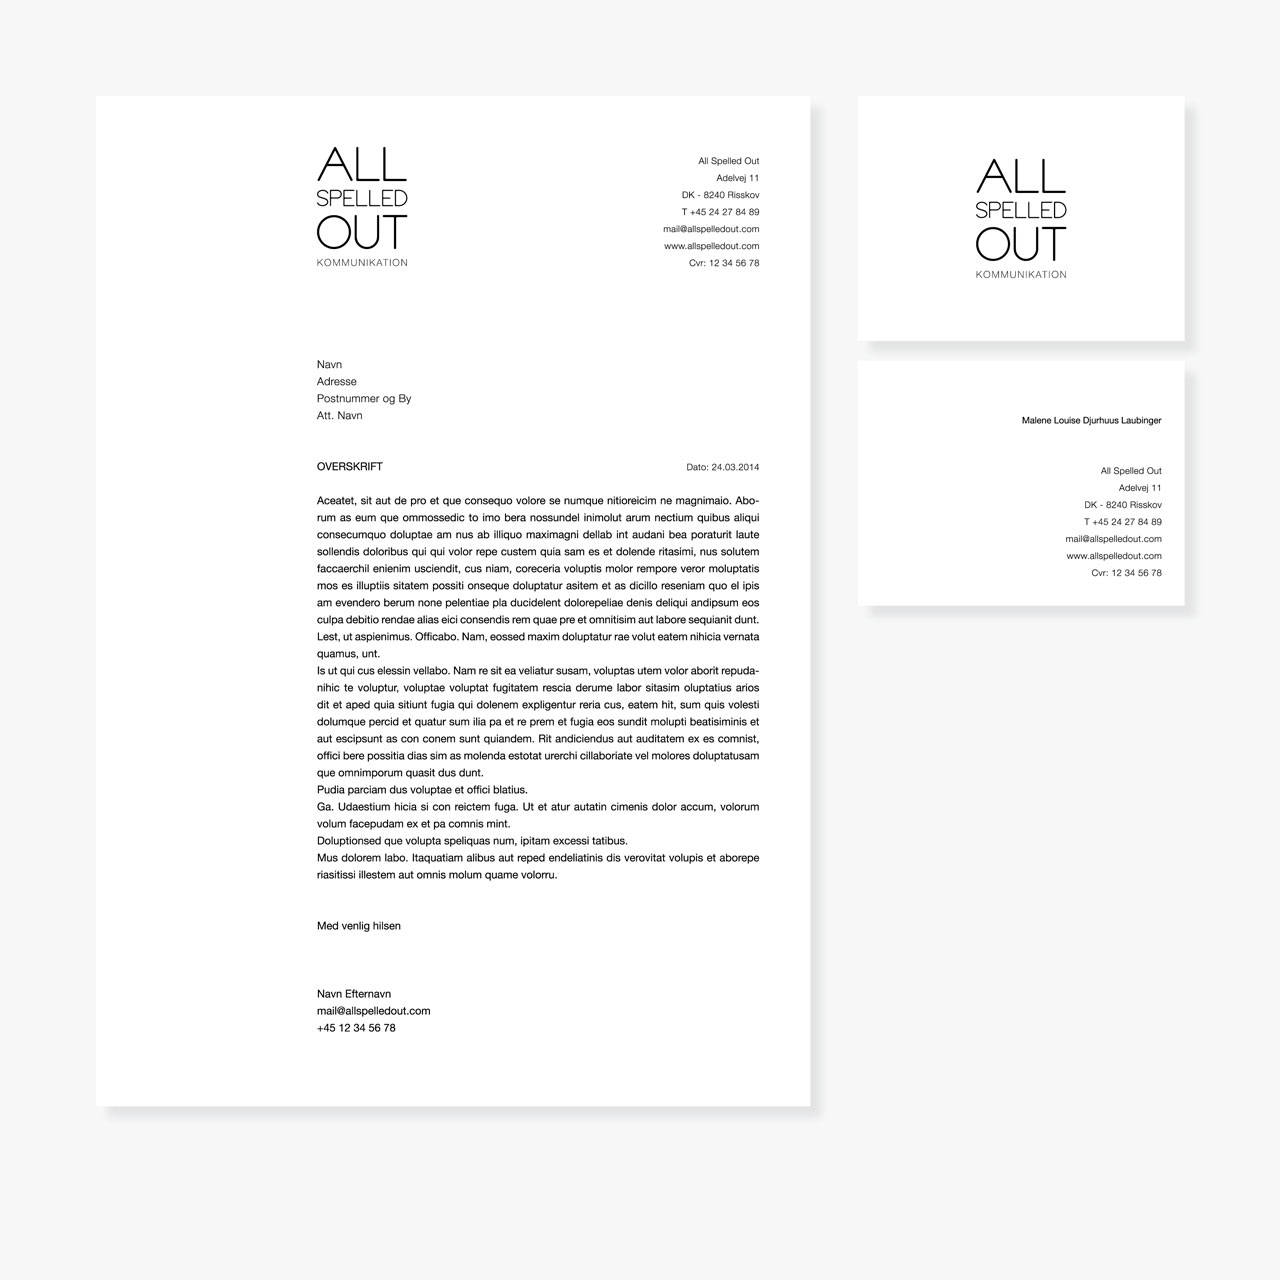 All Spelled Out stationary with letterhead and business card